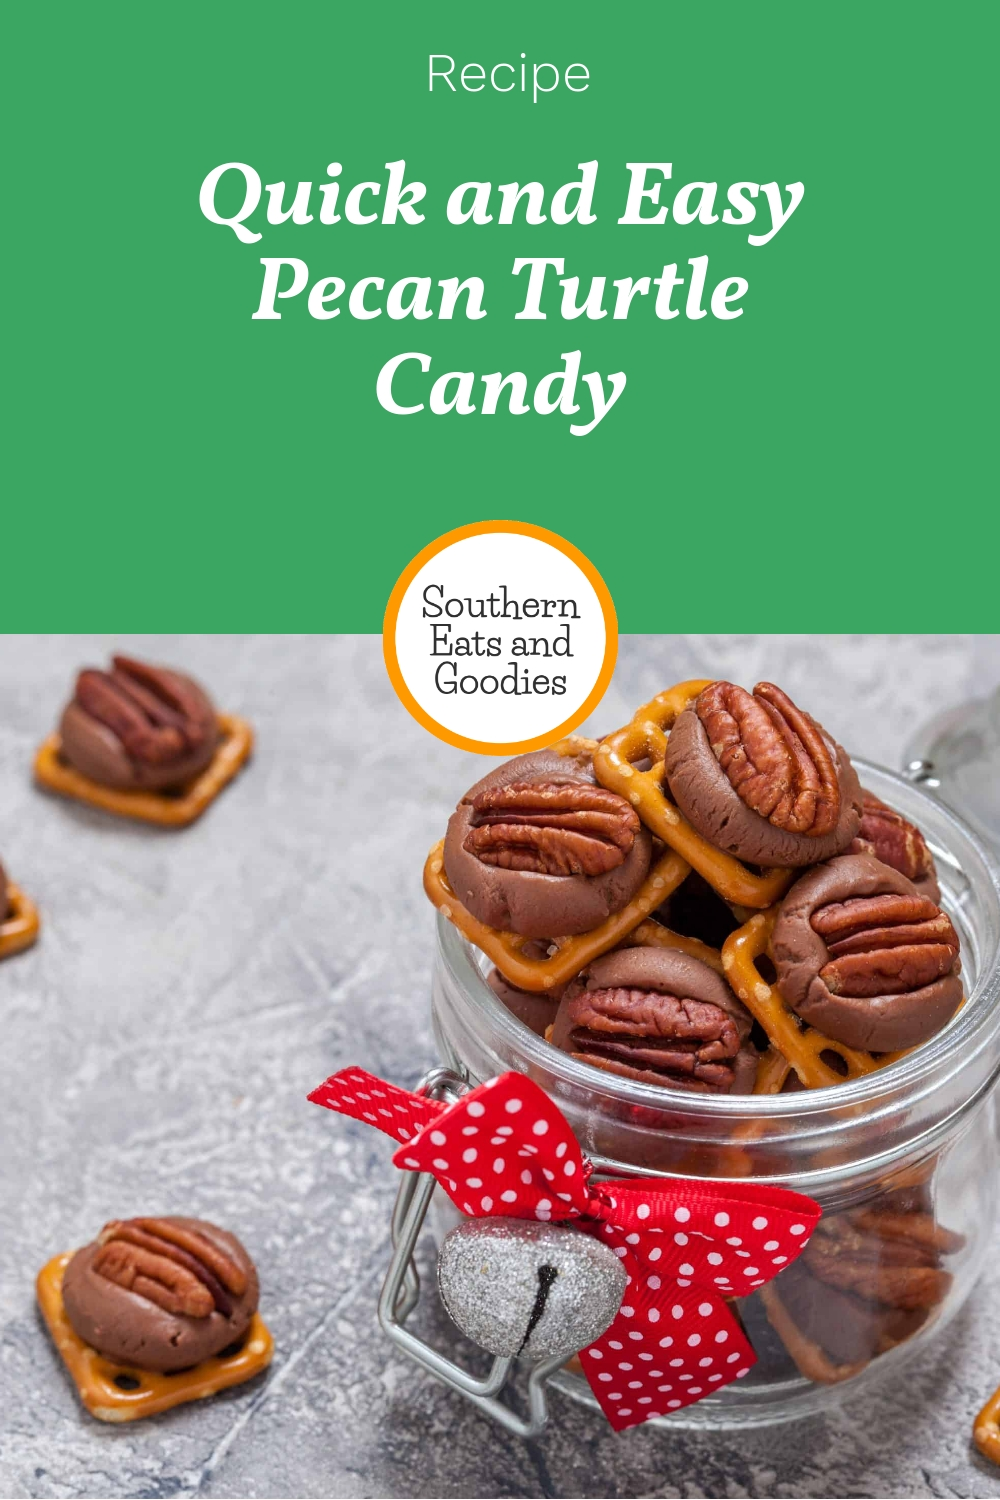 Quick and Easy Pecan Turtle Candy